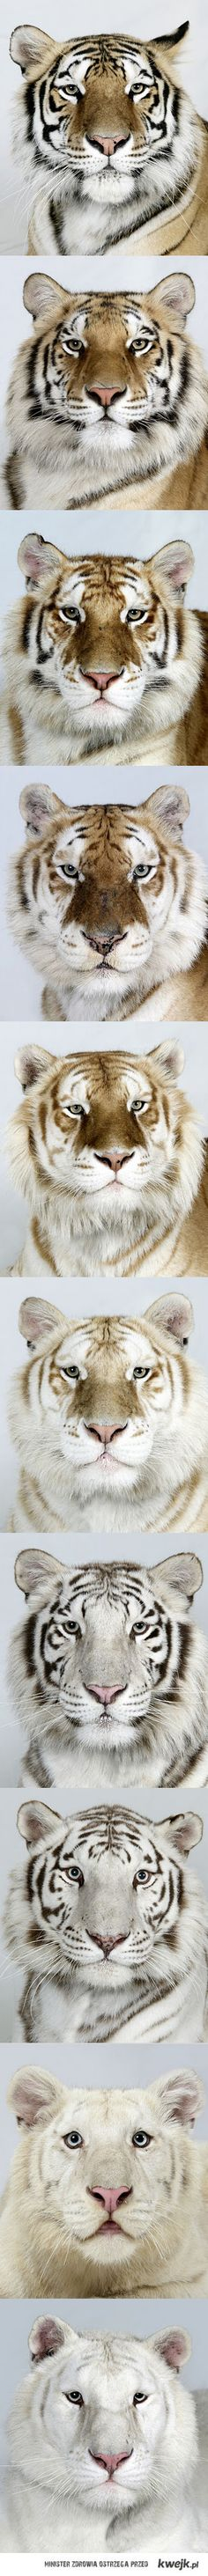 Tigers - I think they are ALL beautiful